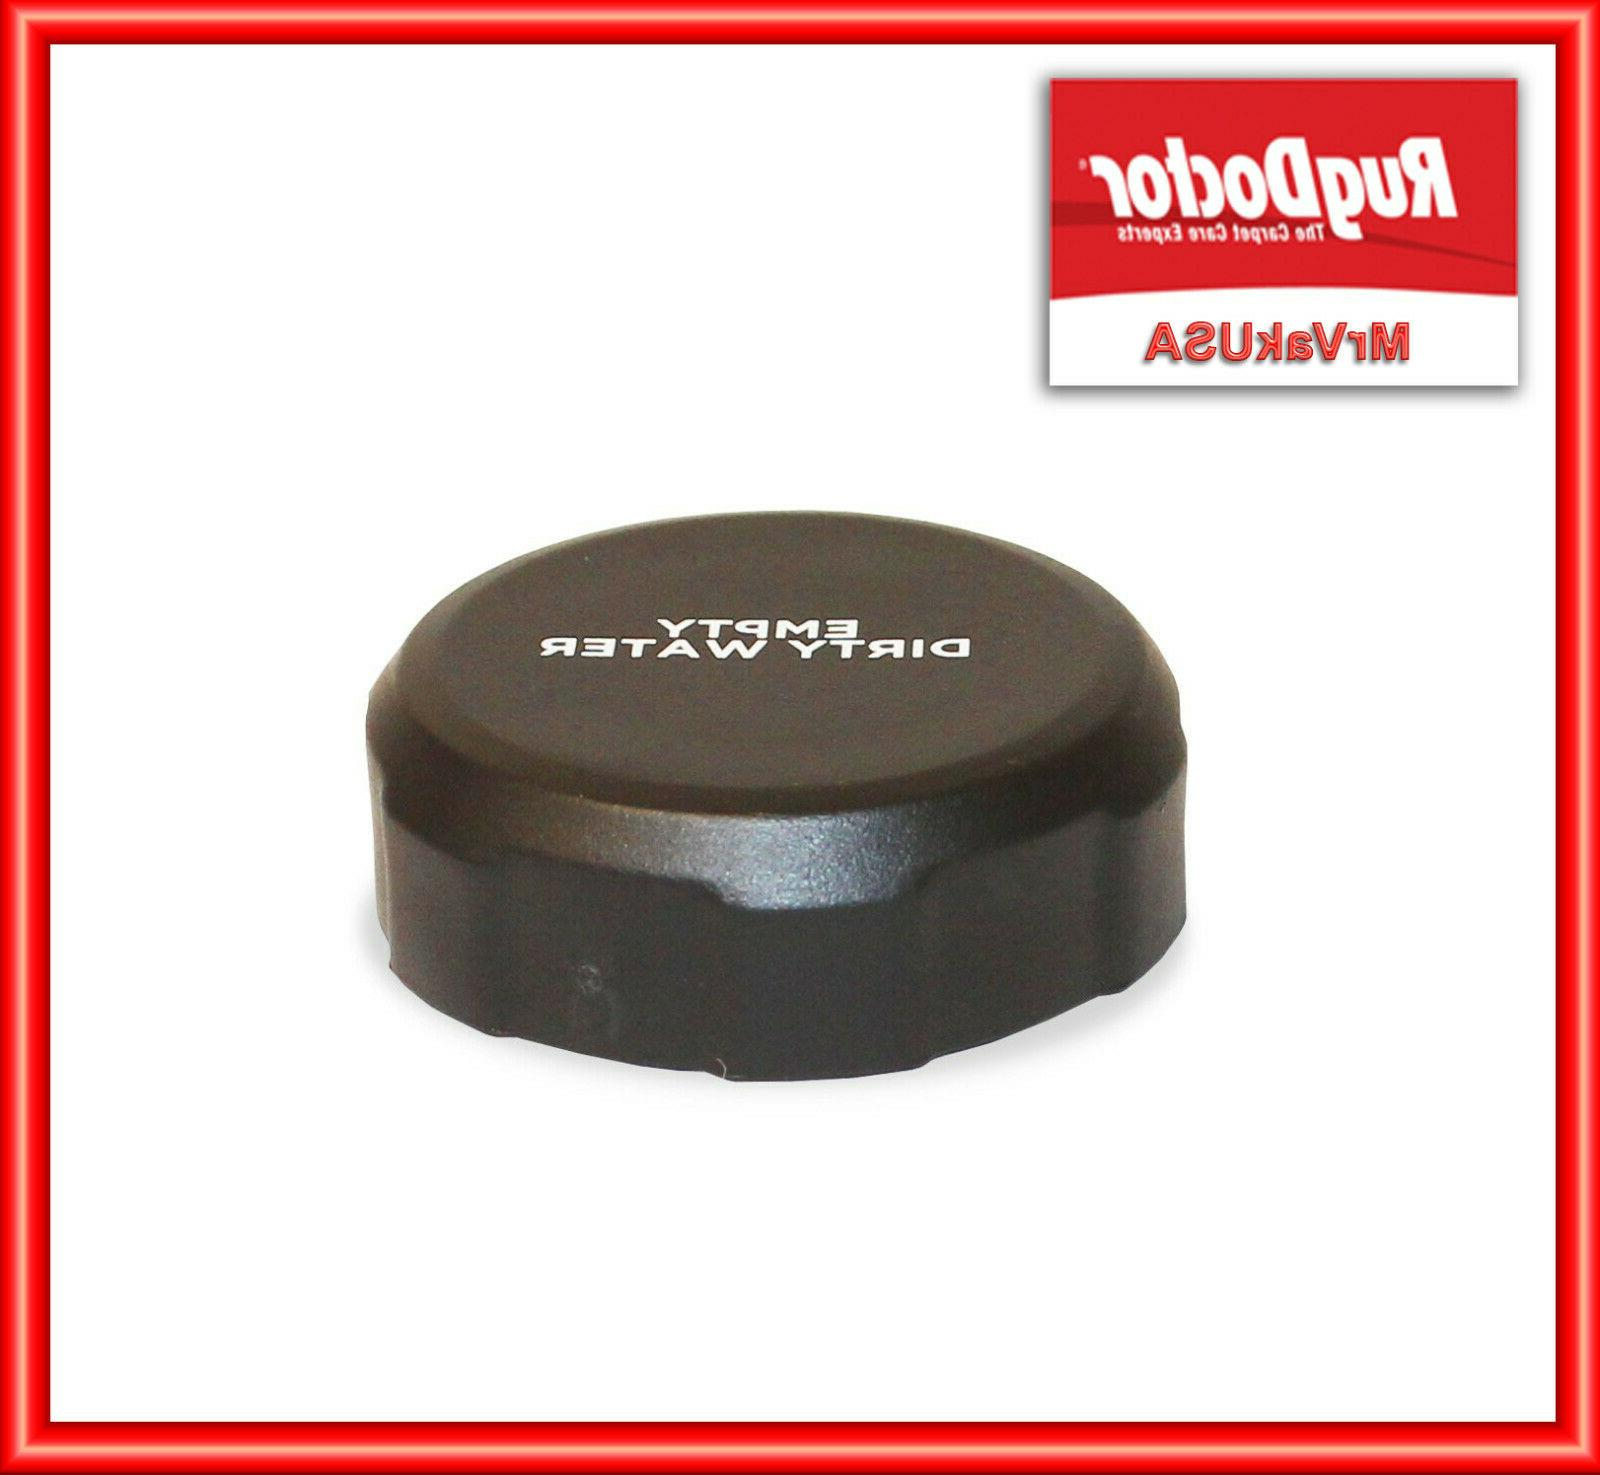 dirty water tank cap for the flexclean